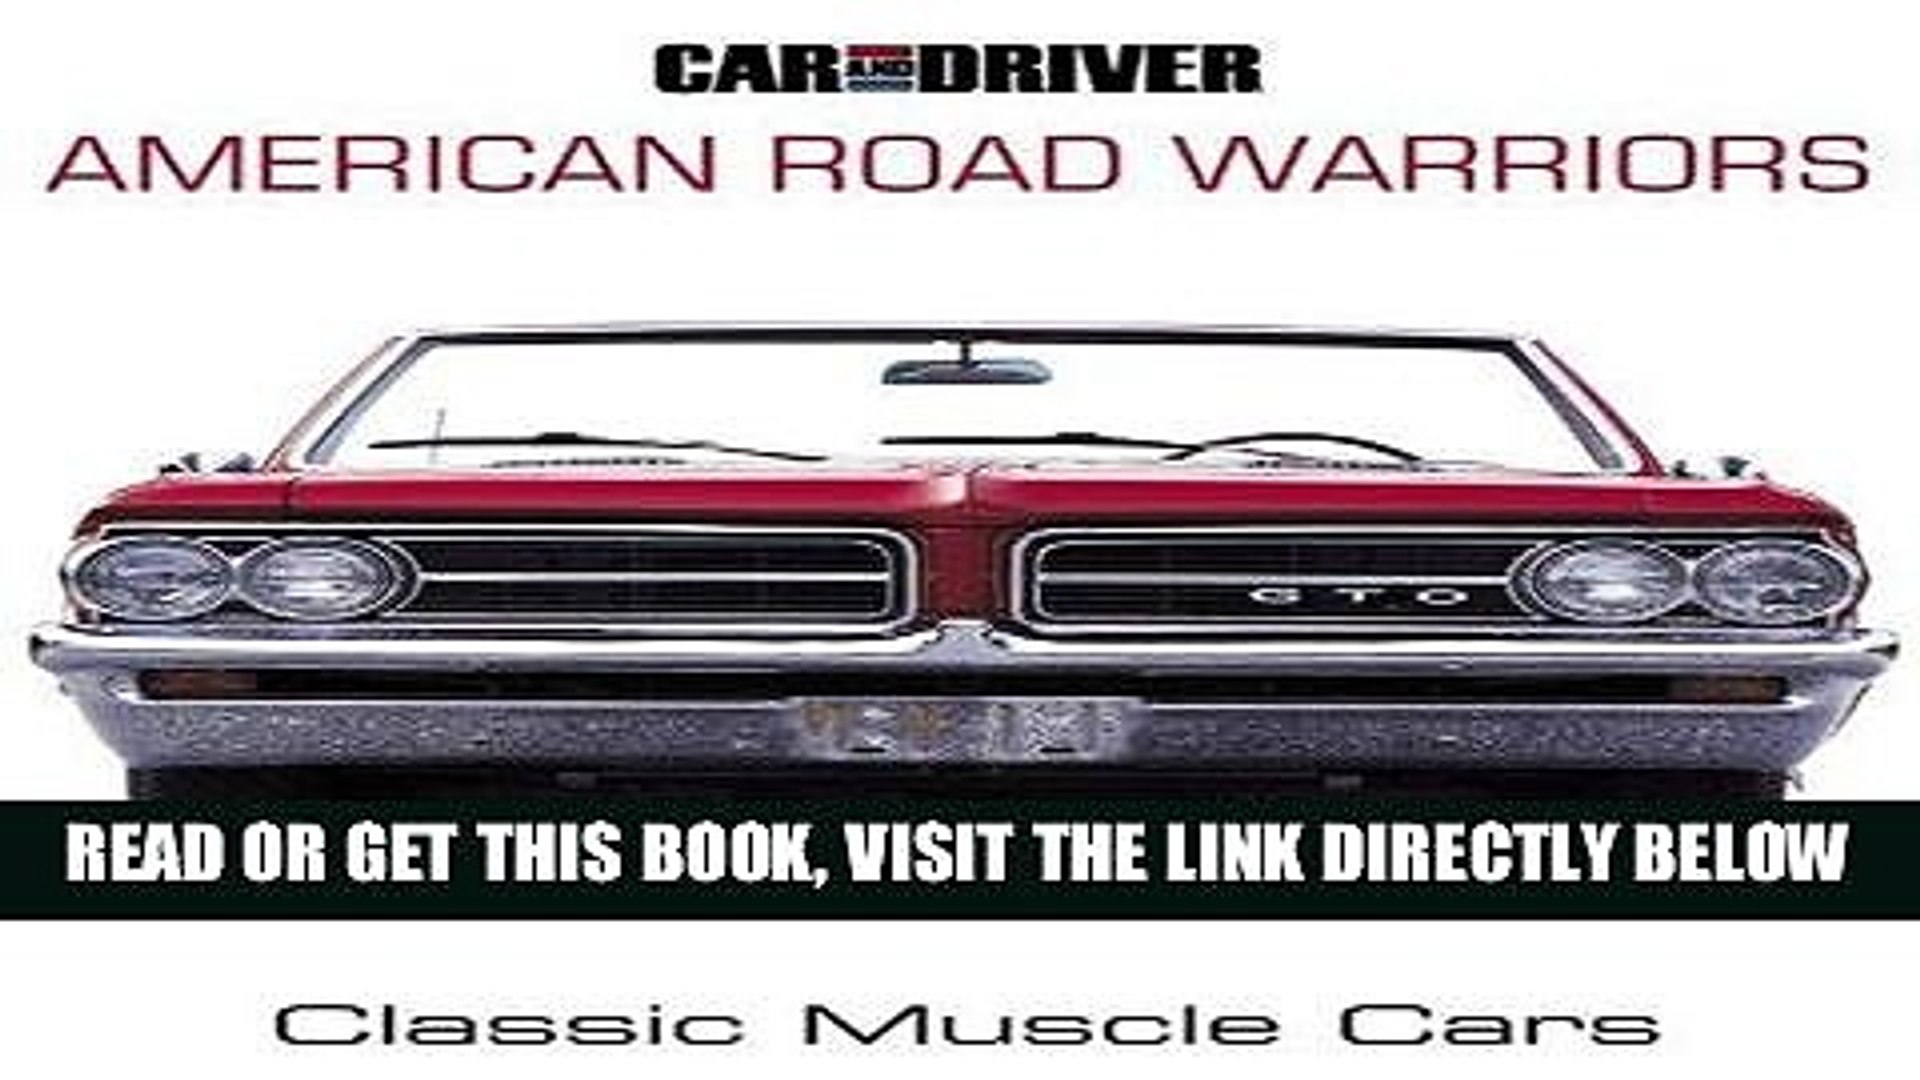 [FREE] EBOOK Car and Driver s American Road Warriors: Classic Muscle Cars BEST COLLECTION